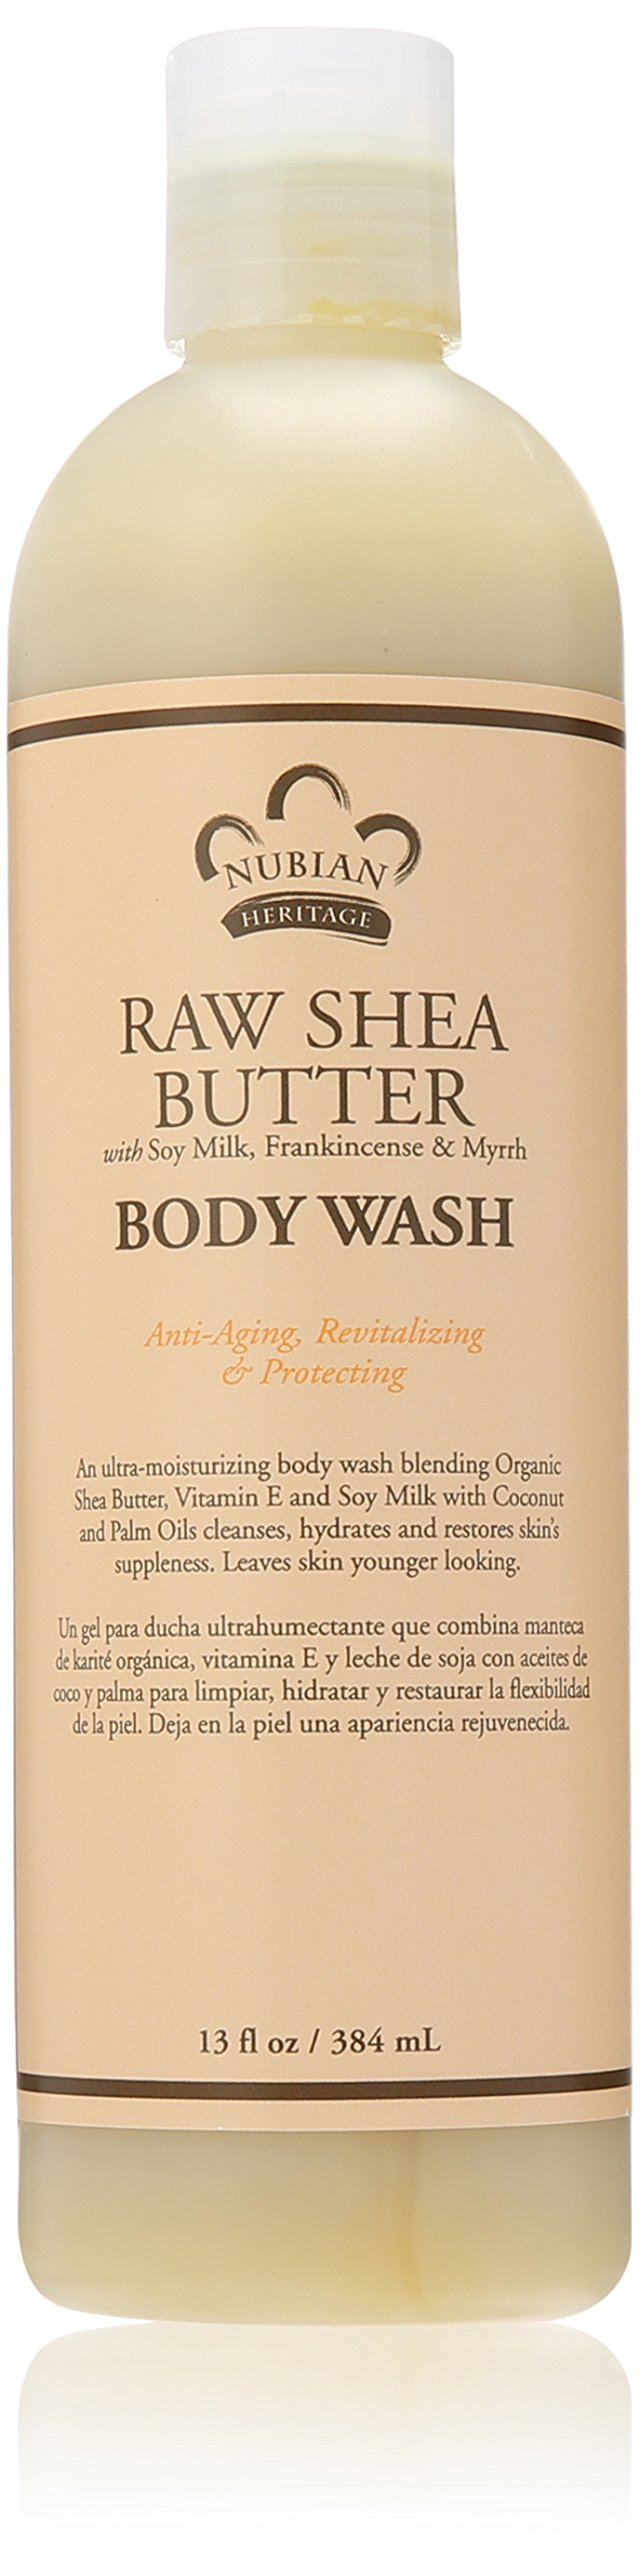 Nubian Heritage Body Wash, Raw Shea and Myrr, 13 Fluid Ounce